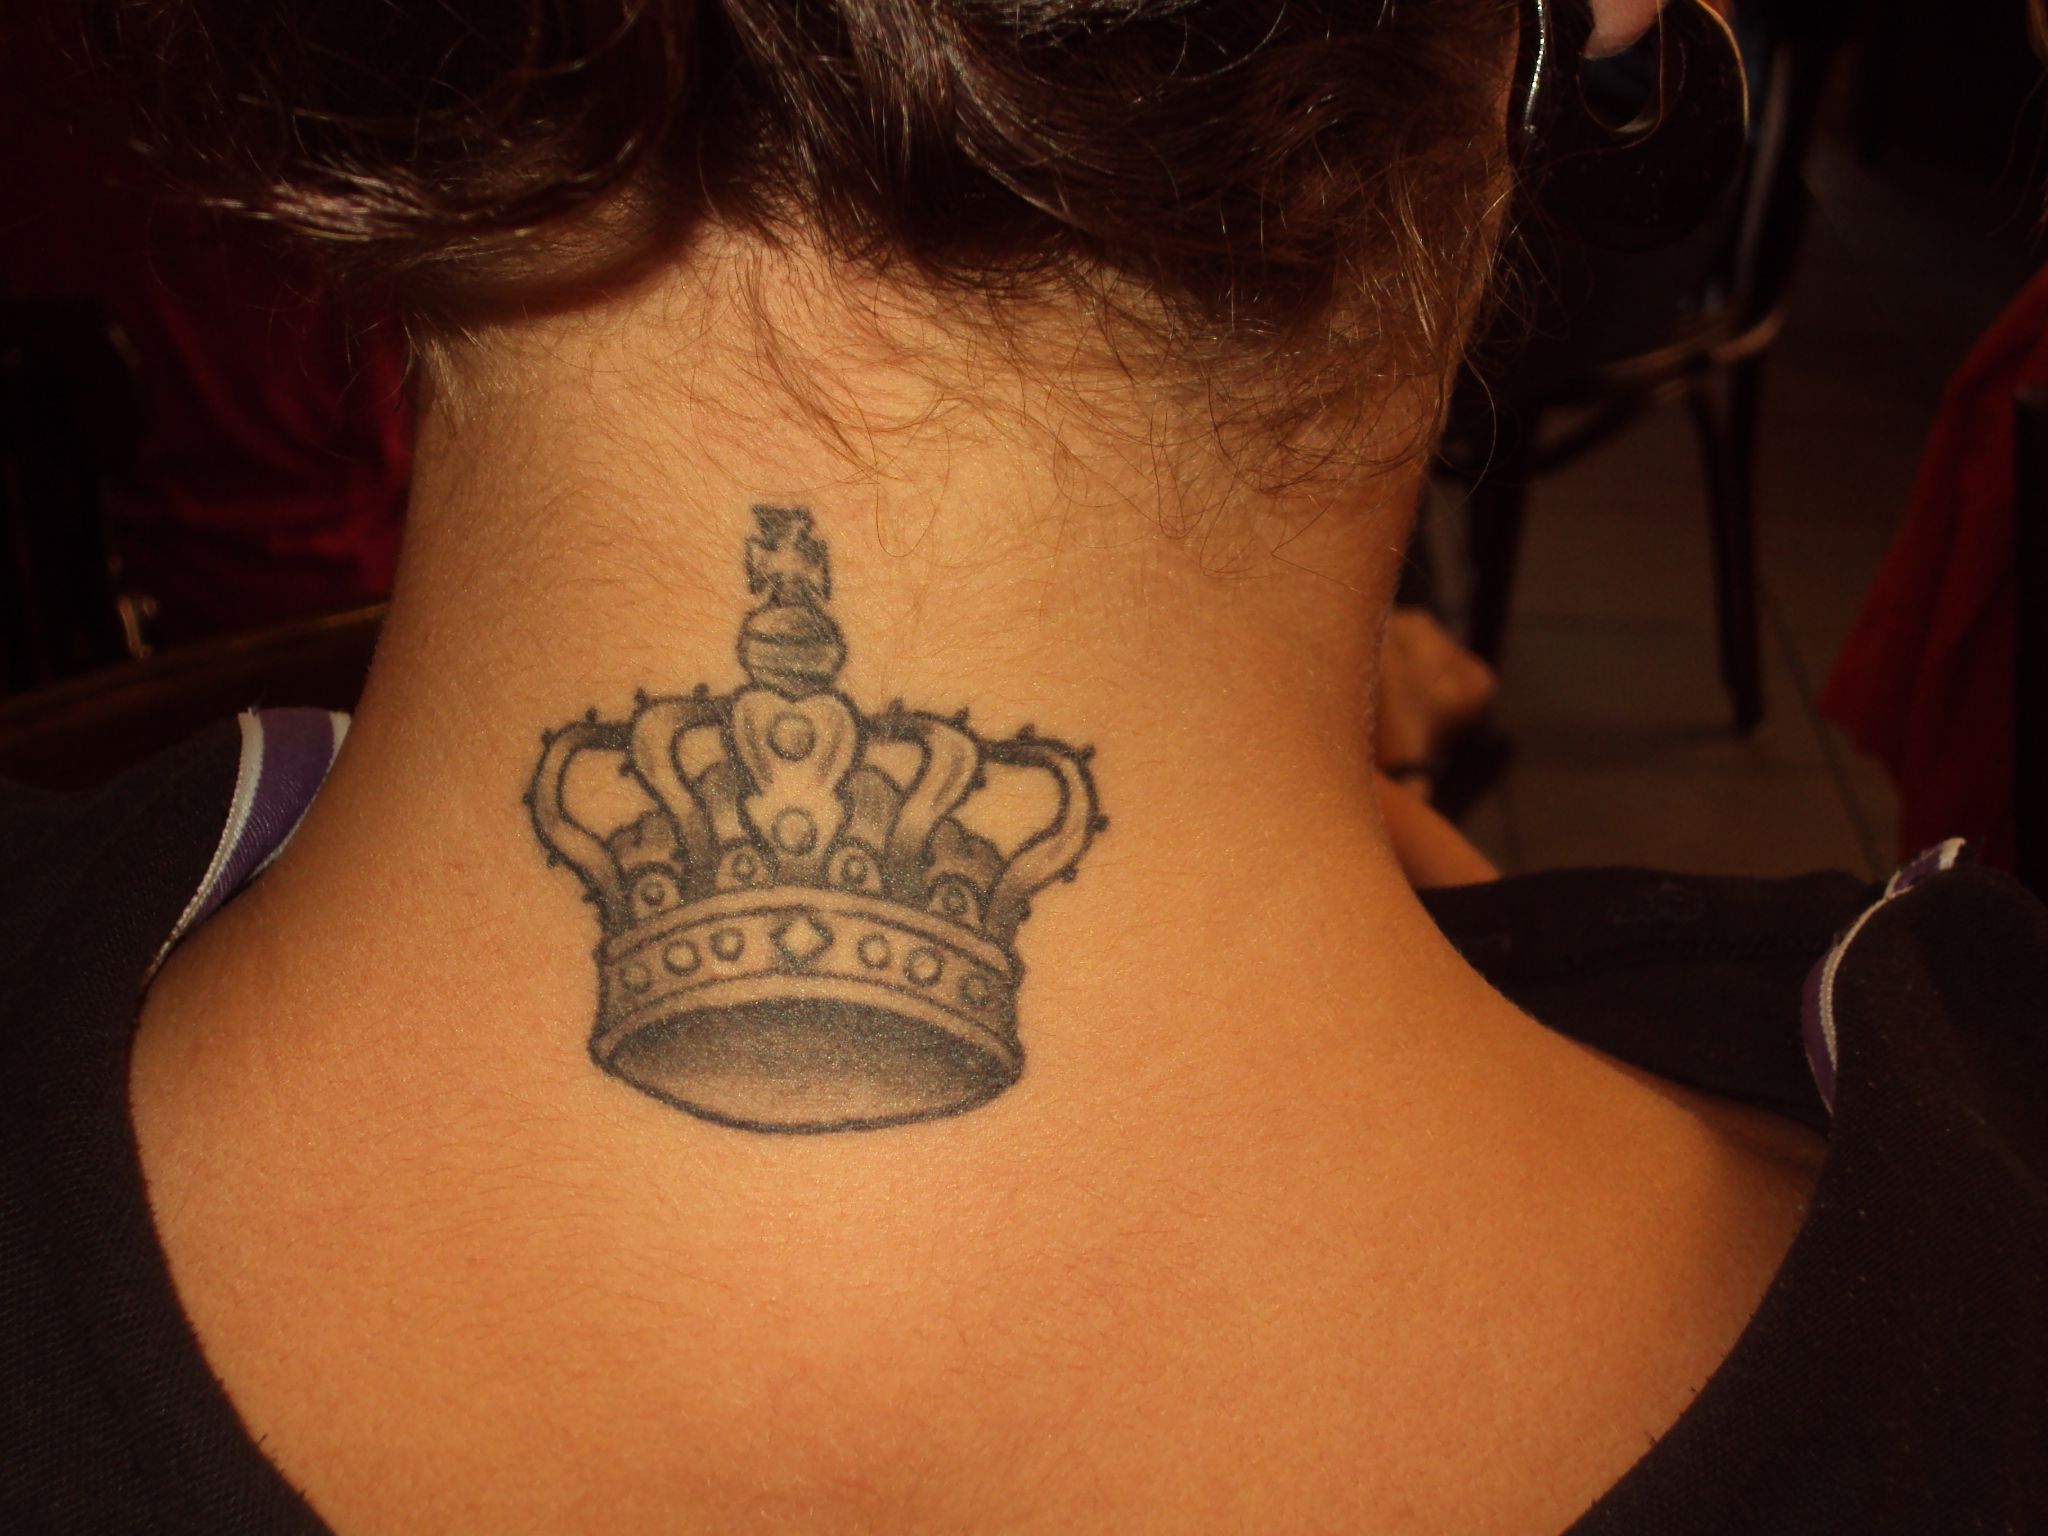 Black And Grey Queen Crown Tattoo On Girl Back Neck Crown Tattoos For Women Crown Tattoo Design Small Crown Tattoo